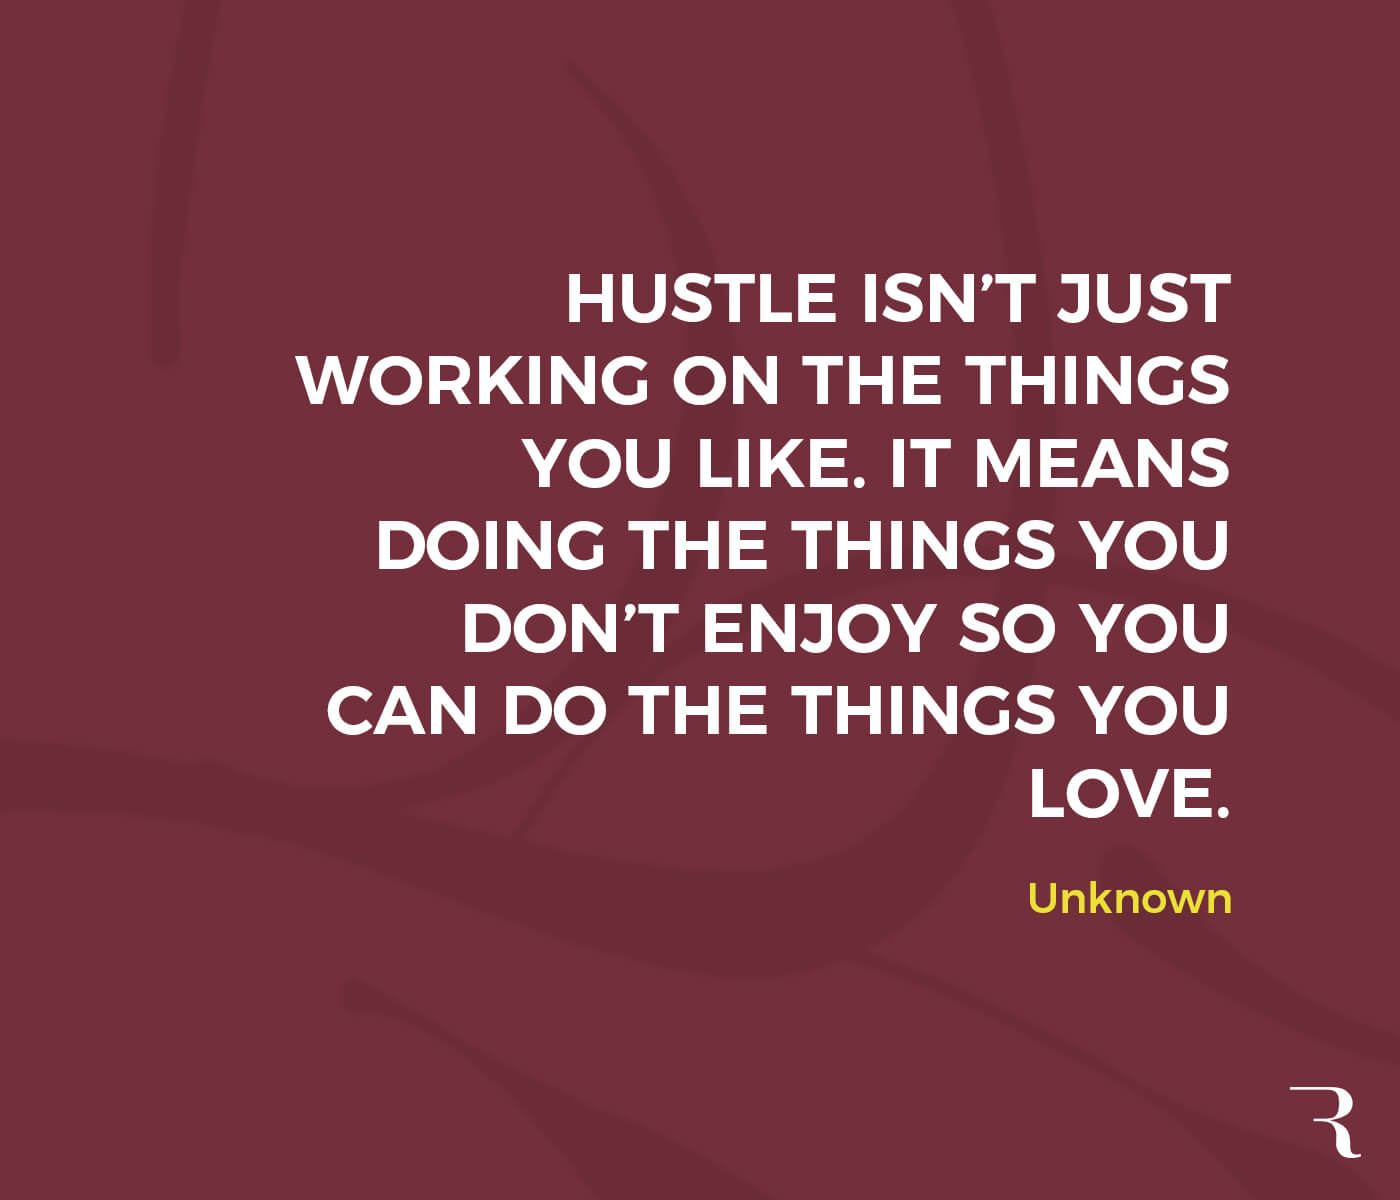 Will Smith Love Quotes 112 Motivational Quotes To Hustle You To Get Sh*t Done And Succeed